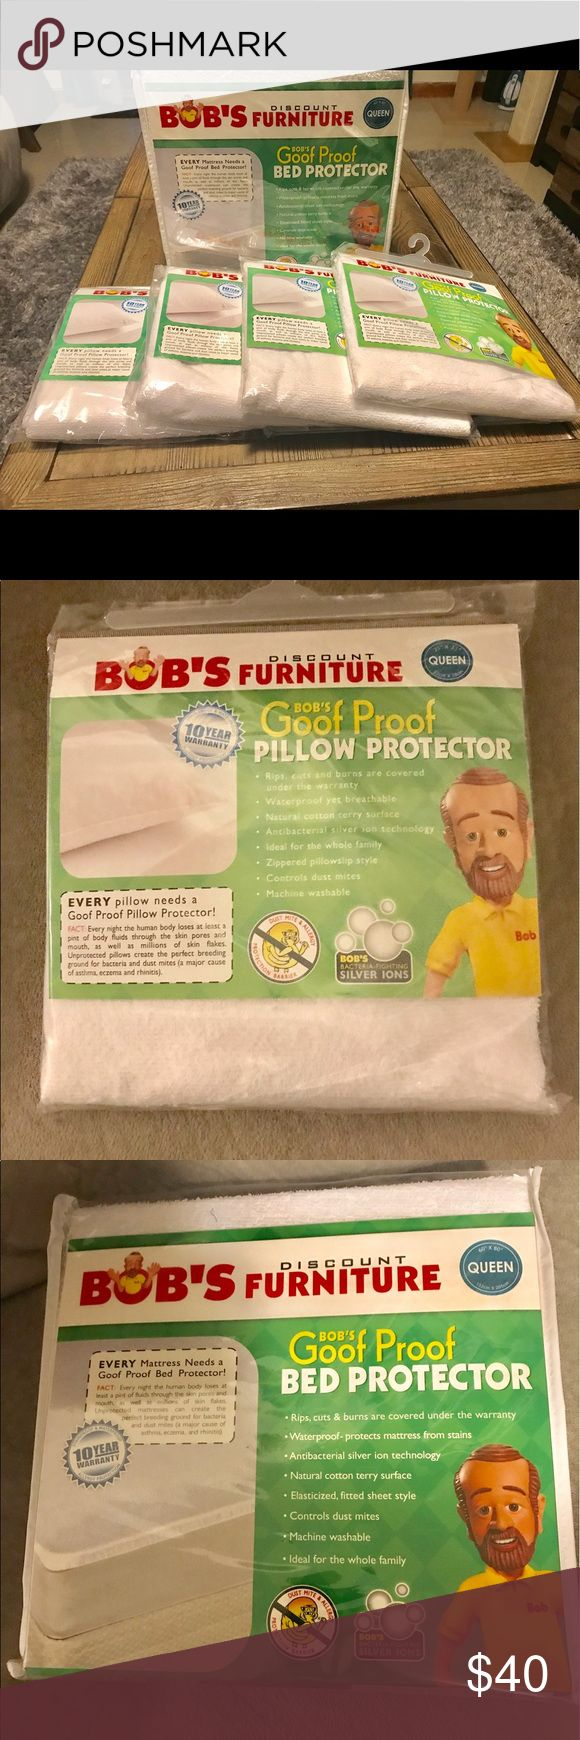 Bob's bed protector and pillow protectors Bob's furniture queen size bed protector and 4 queen size pillow protectors. Brand new in packaging. Bed protector retails for $69 and each pillow protector for $19. That is $145 total. Get great deal here. Other